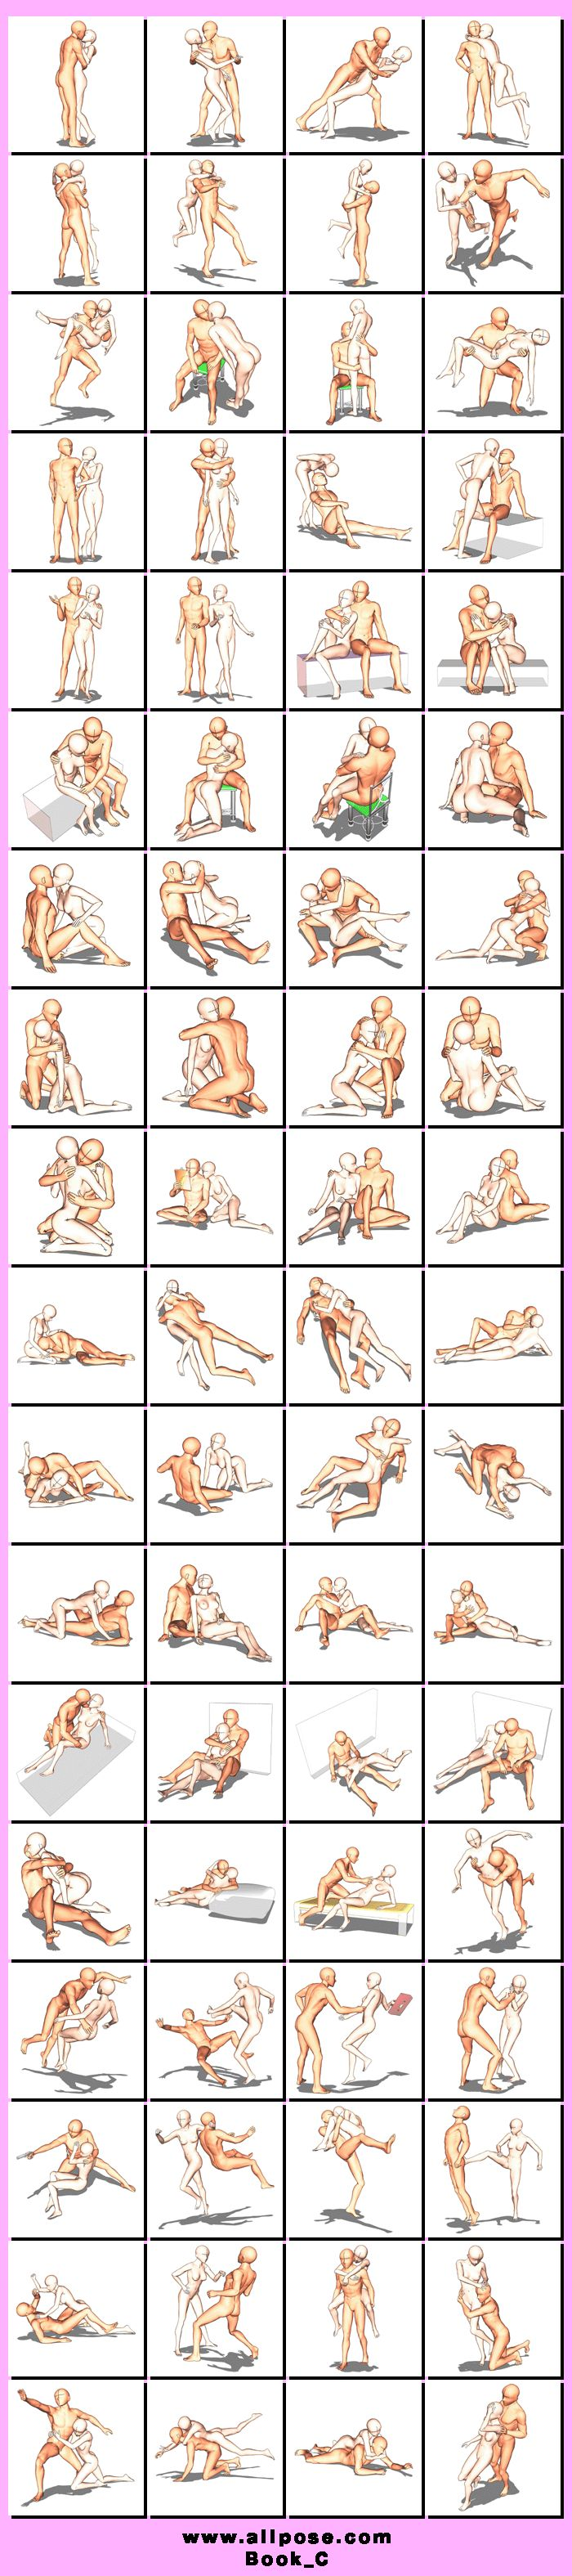 more couple poses